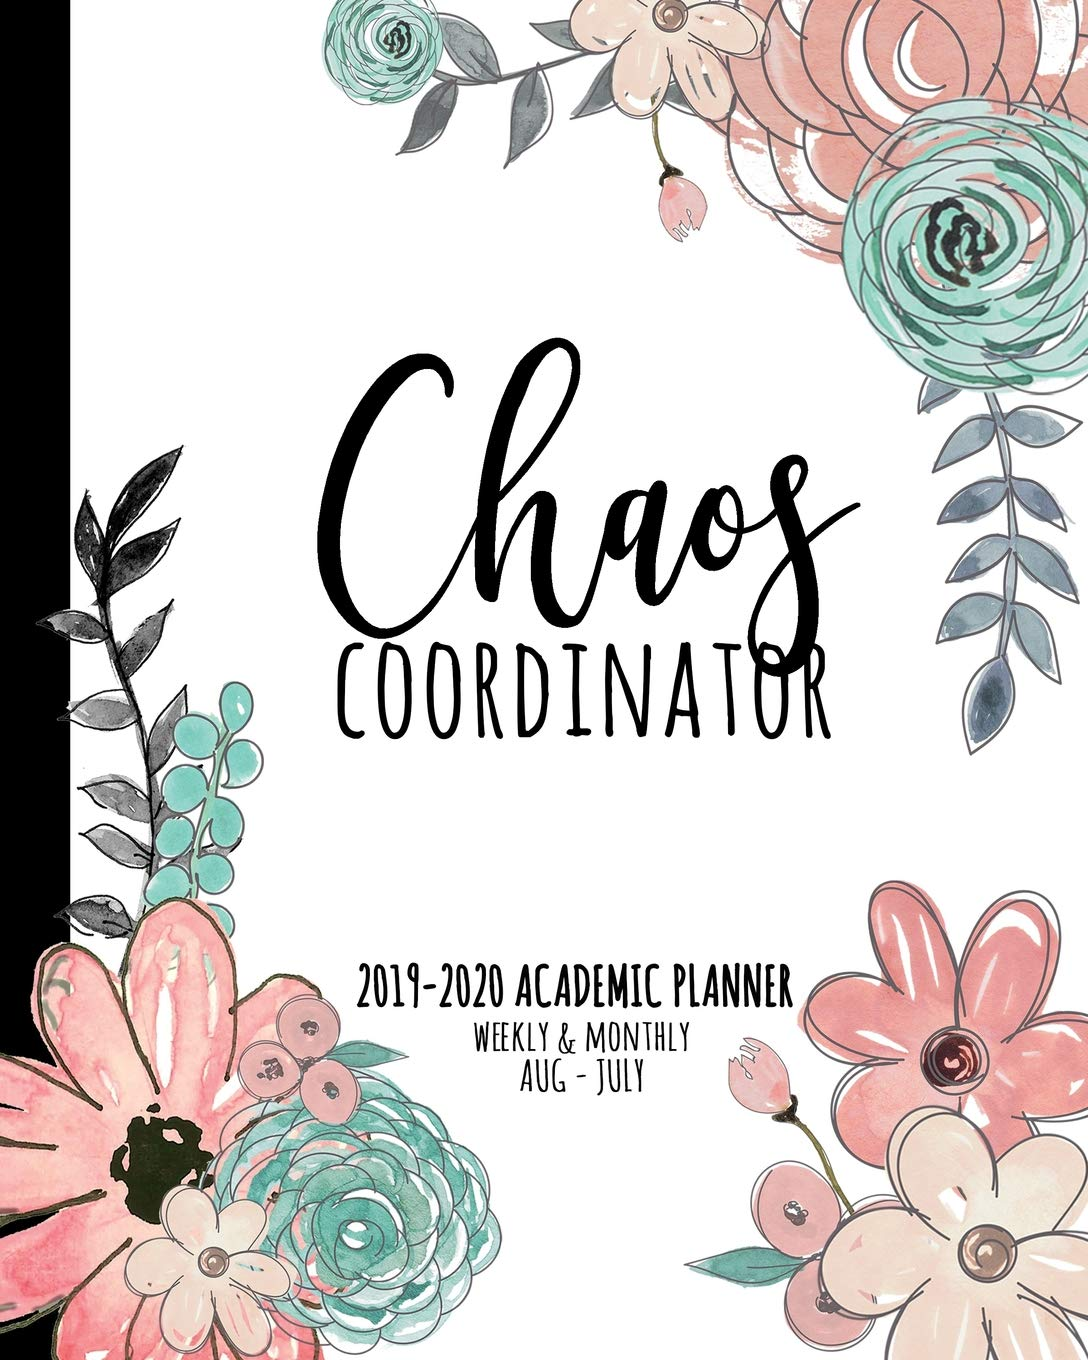 Chaos Coordinator 2019-2020 Academic Planner Weekly And ...